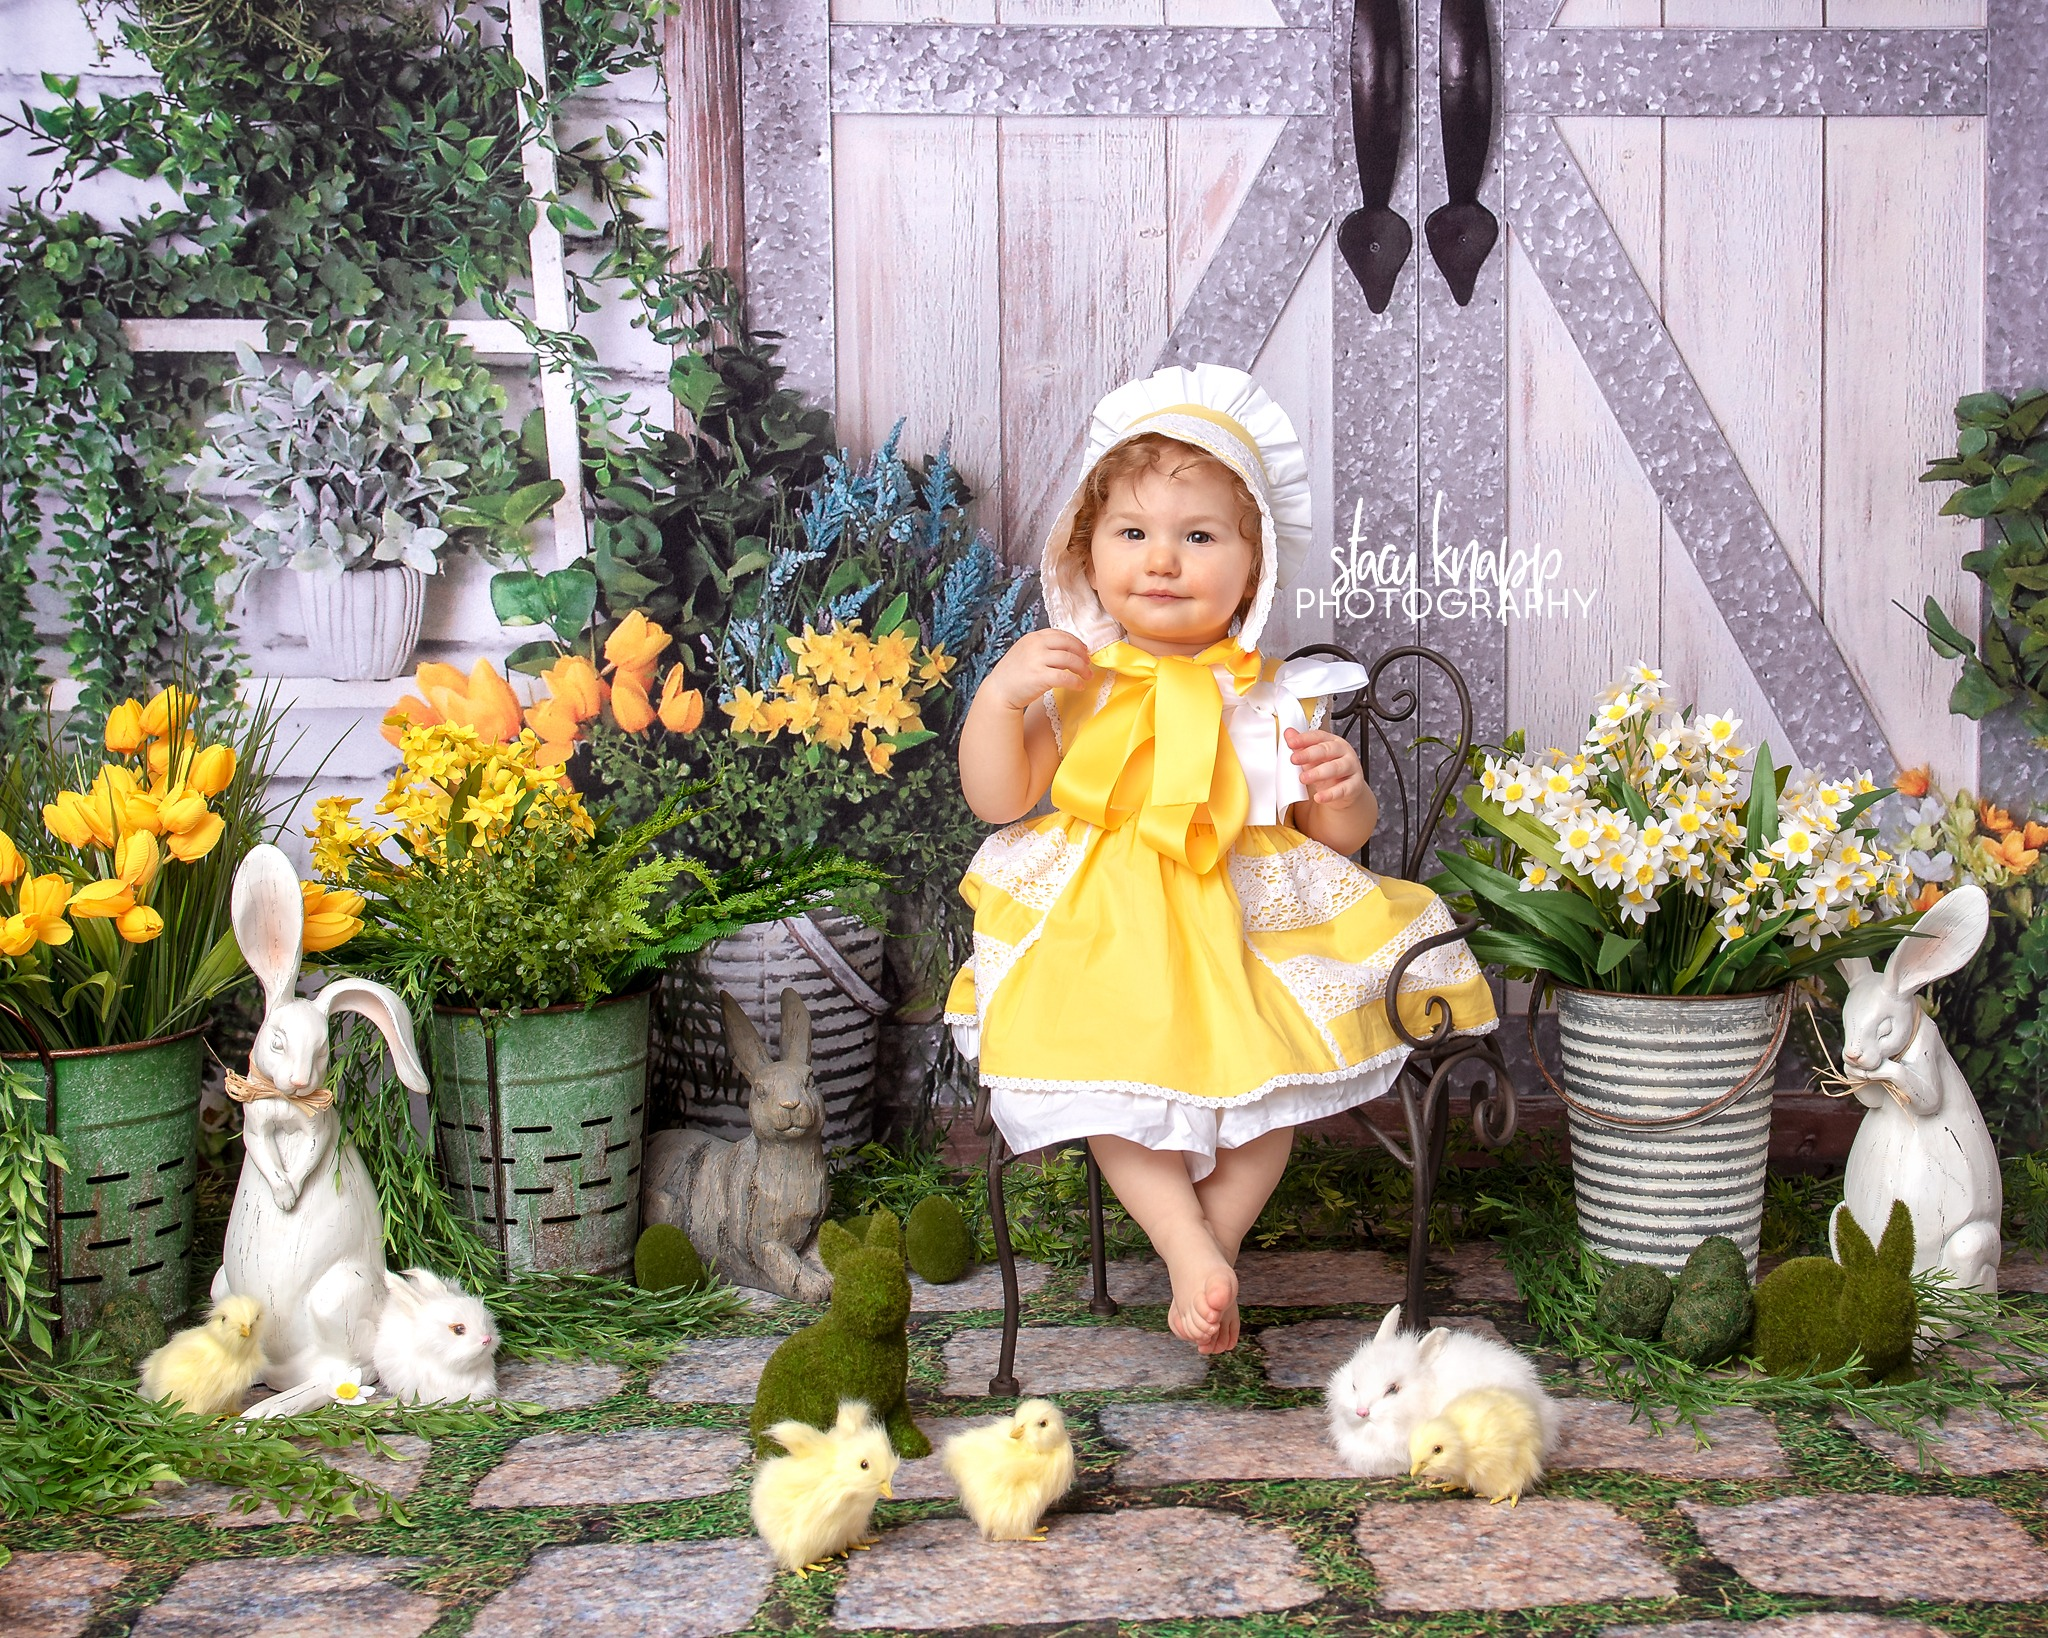 Spring mini session photograph of a baby girl in adorable yellow dress and matching bonnet